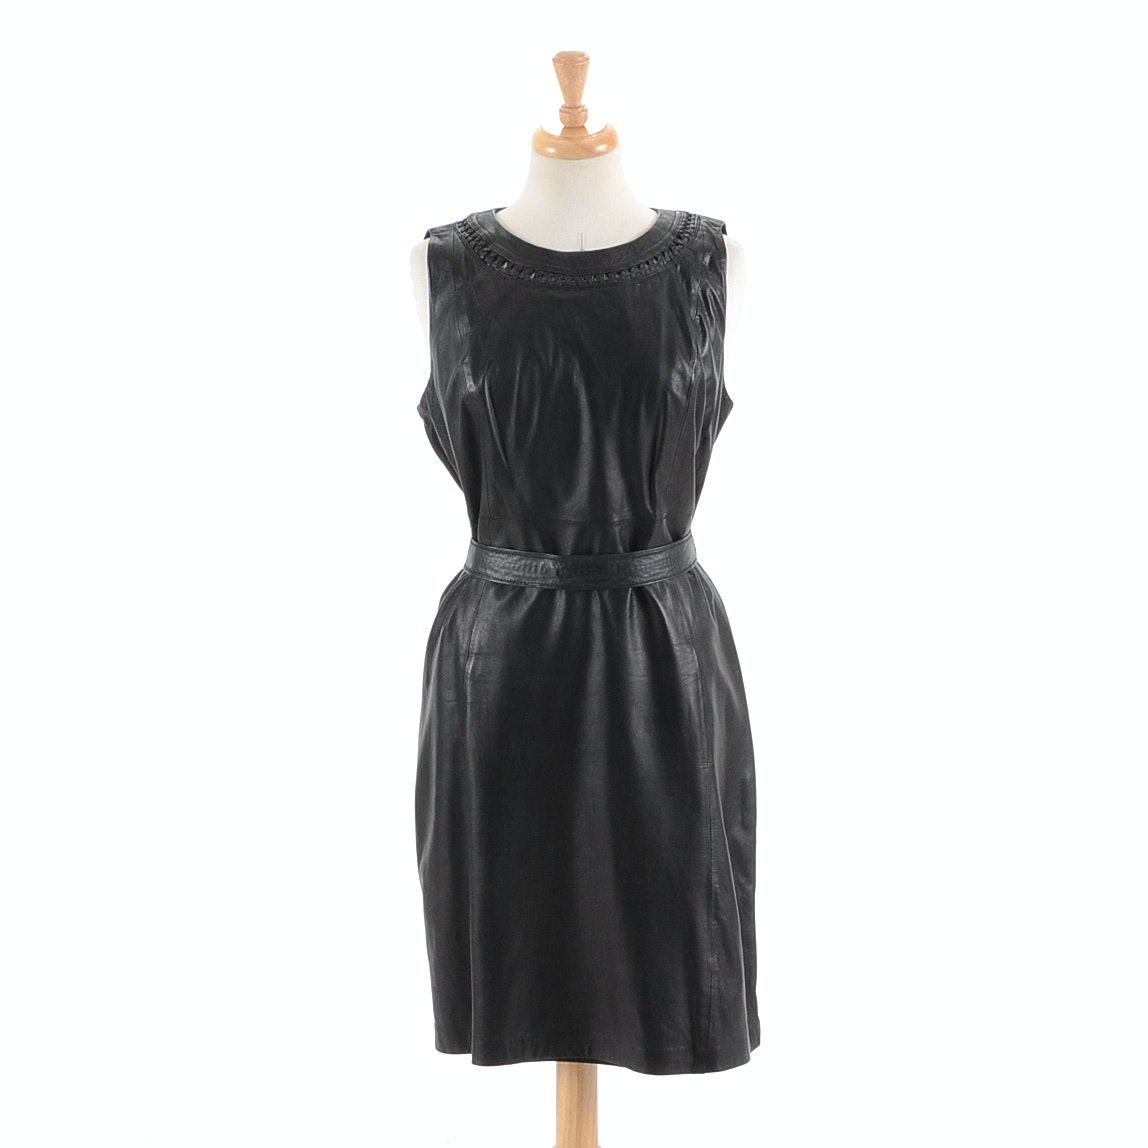 Elie Tahari Black Leather Dress